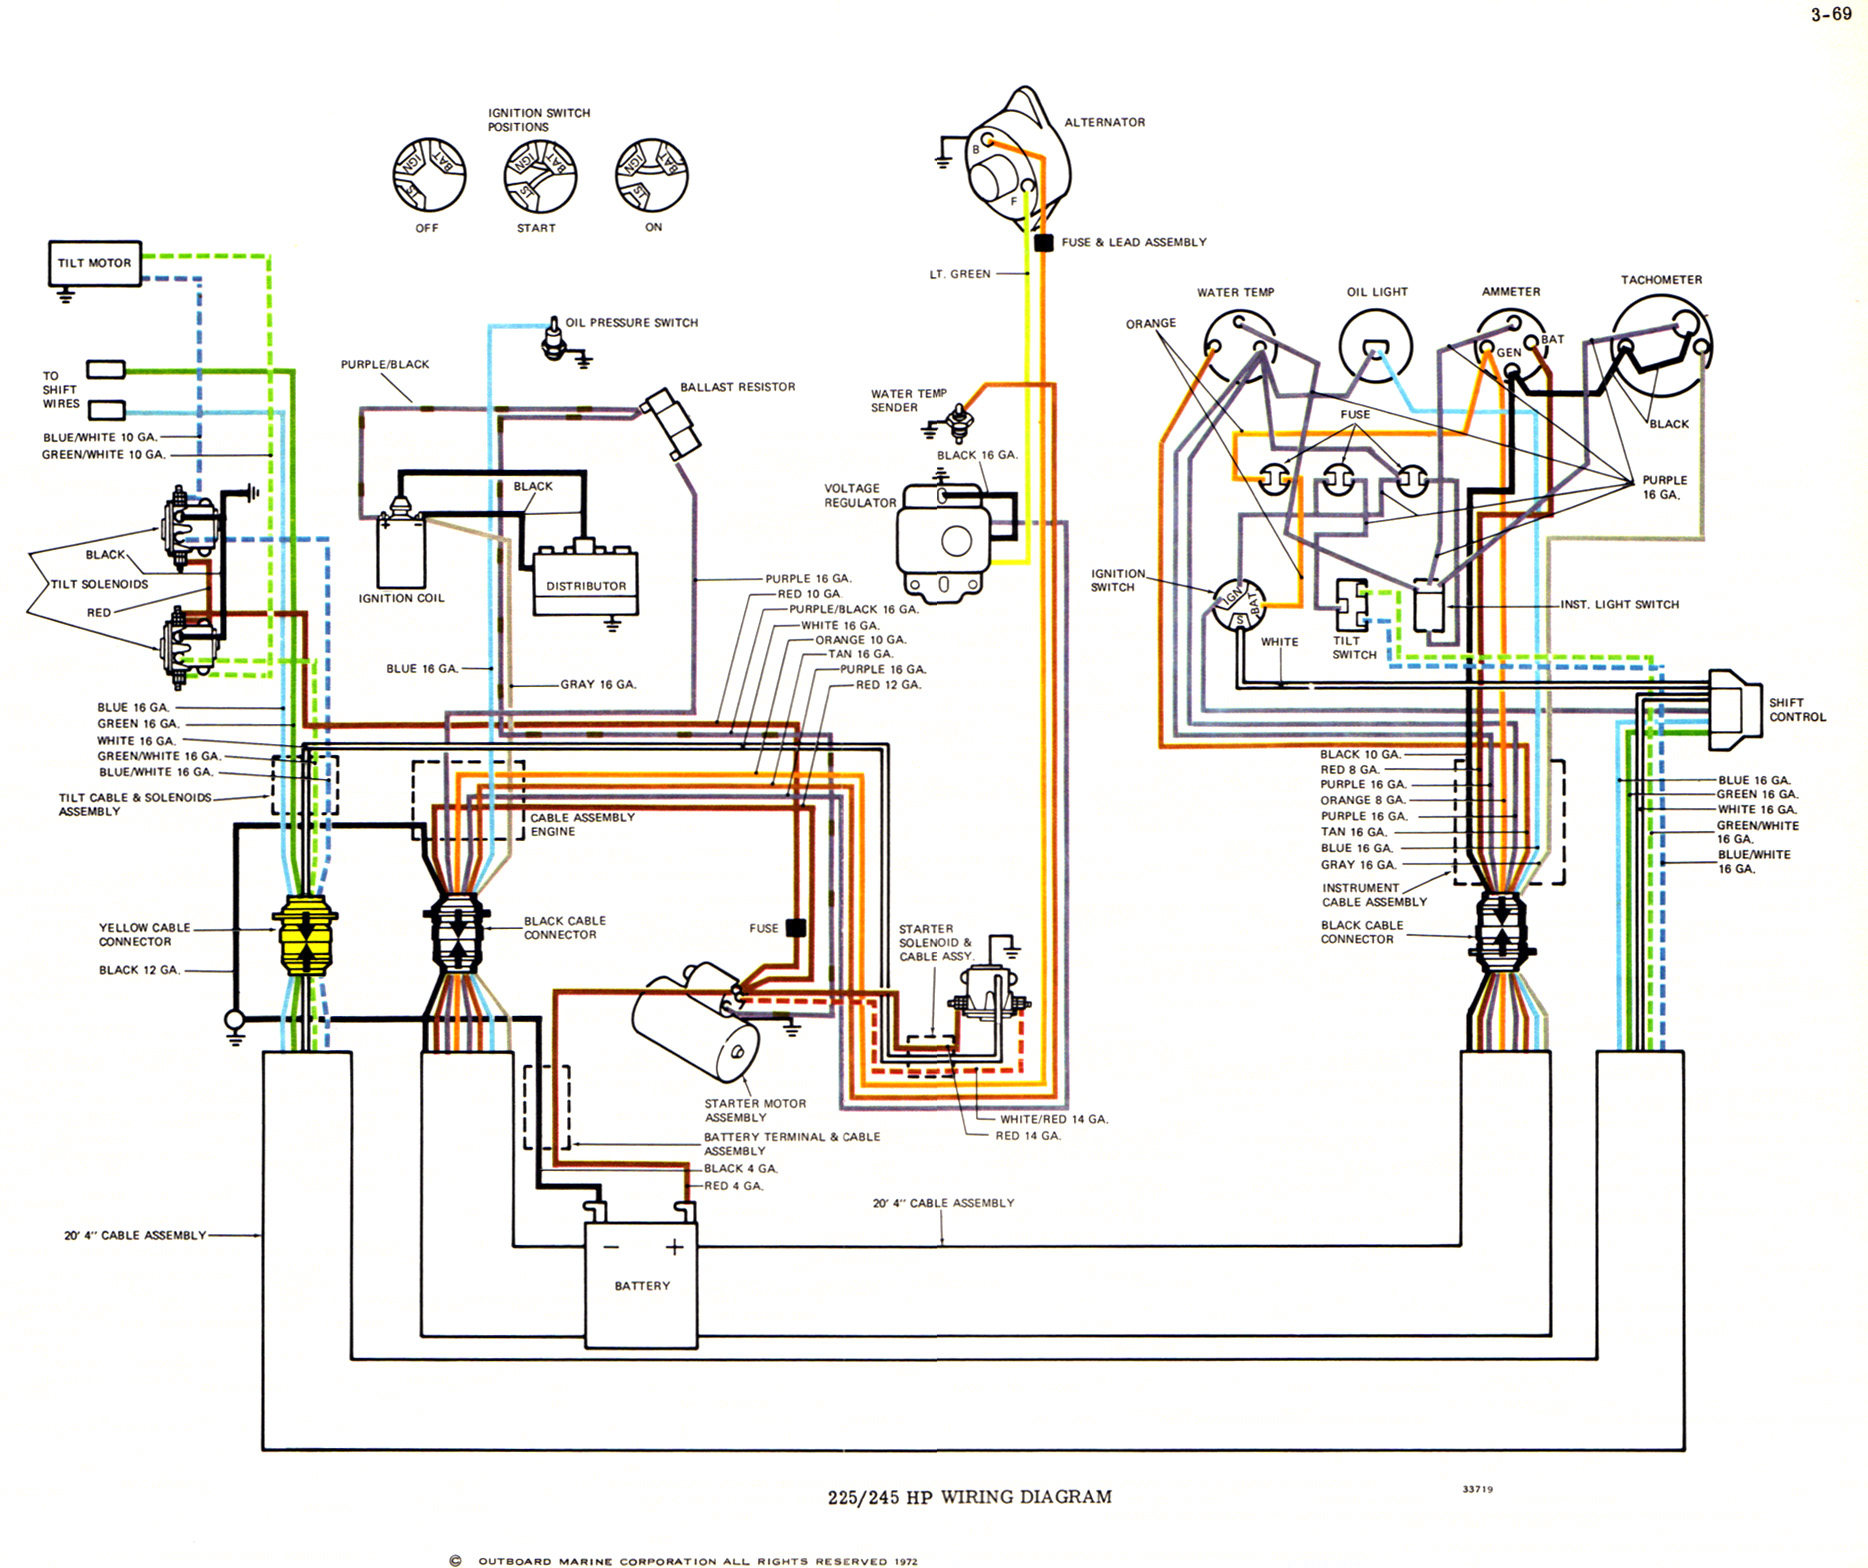 Wiring diagrams for johnson boat motors « all boats